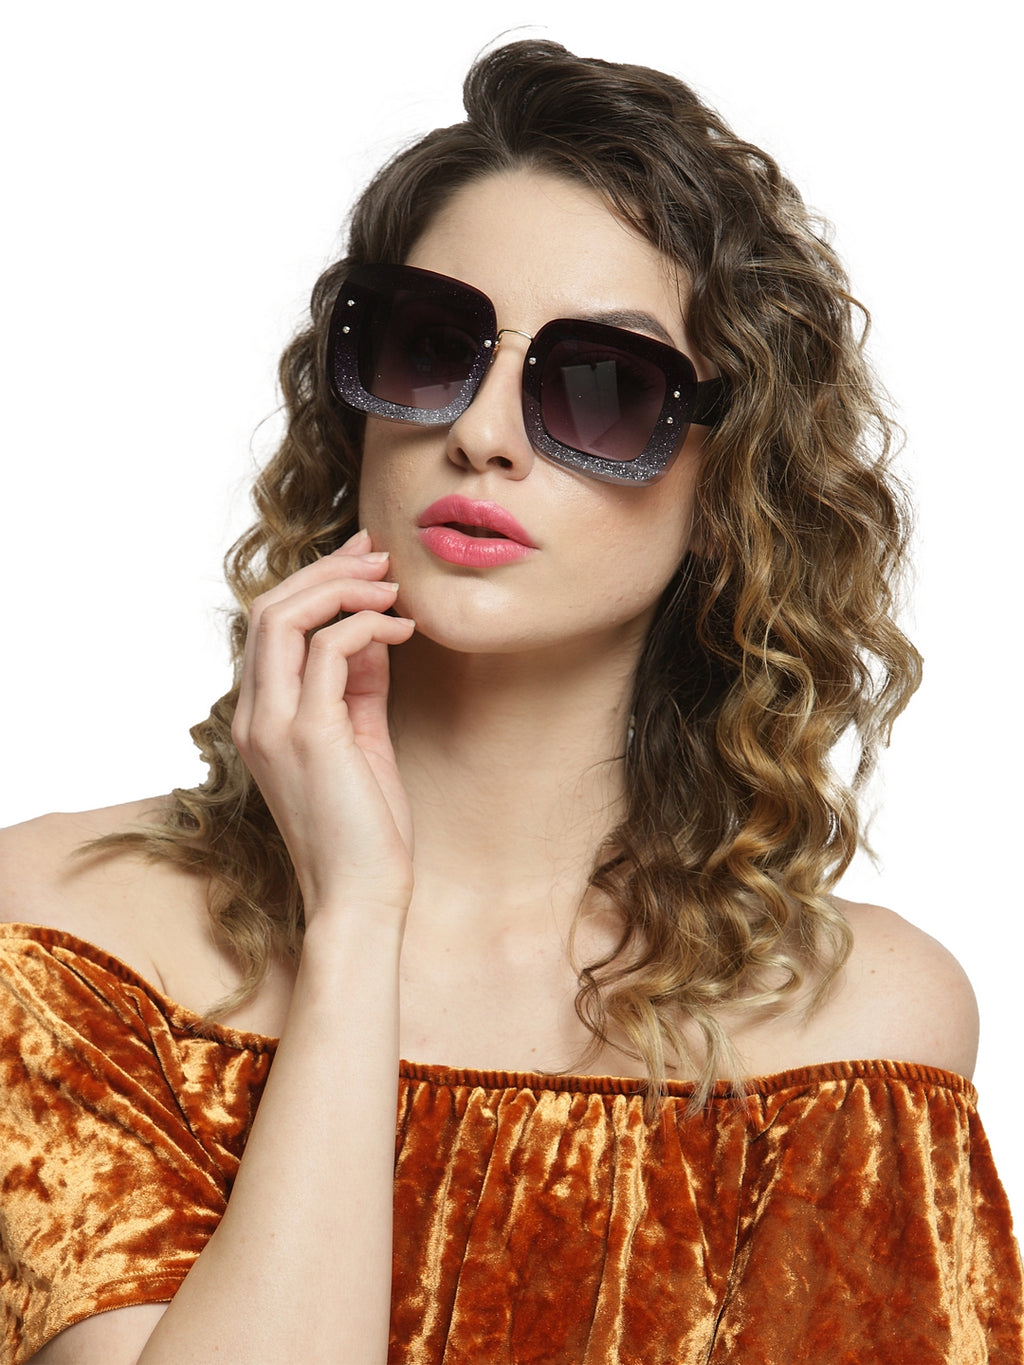 Avant-Garde Paris Vintage Luxury Retro High Street Sunglasses